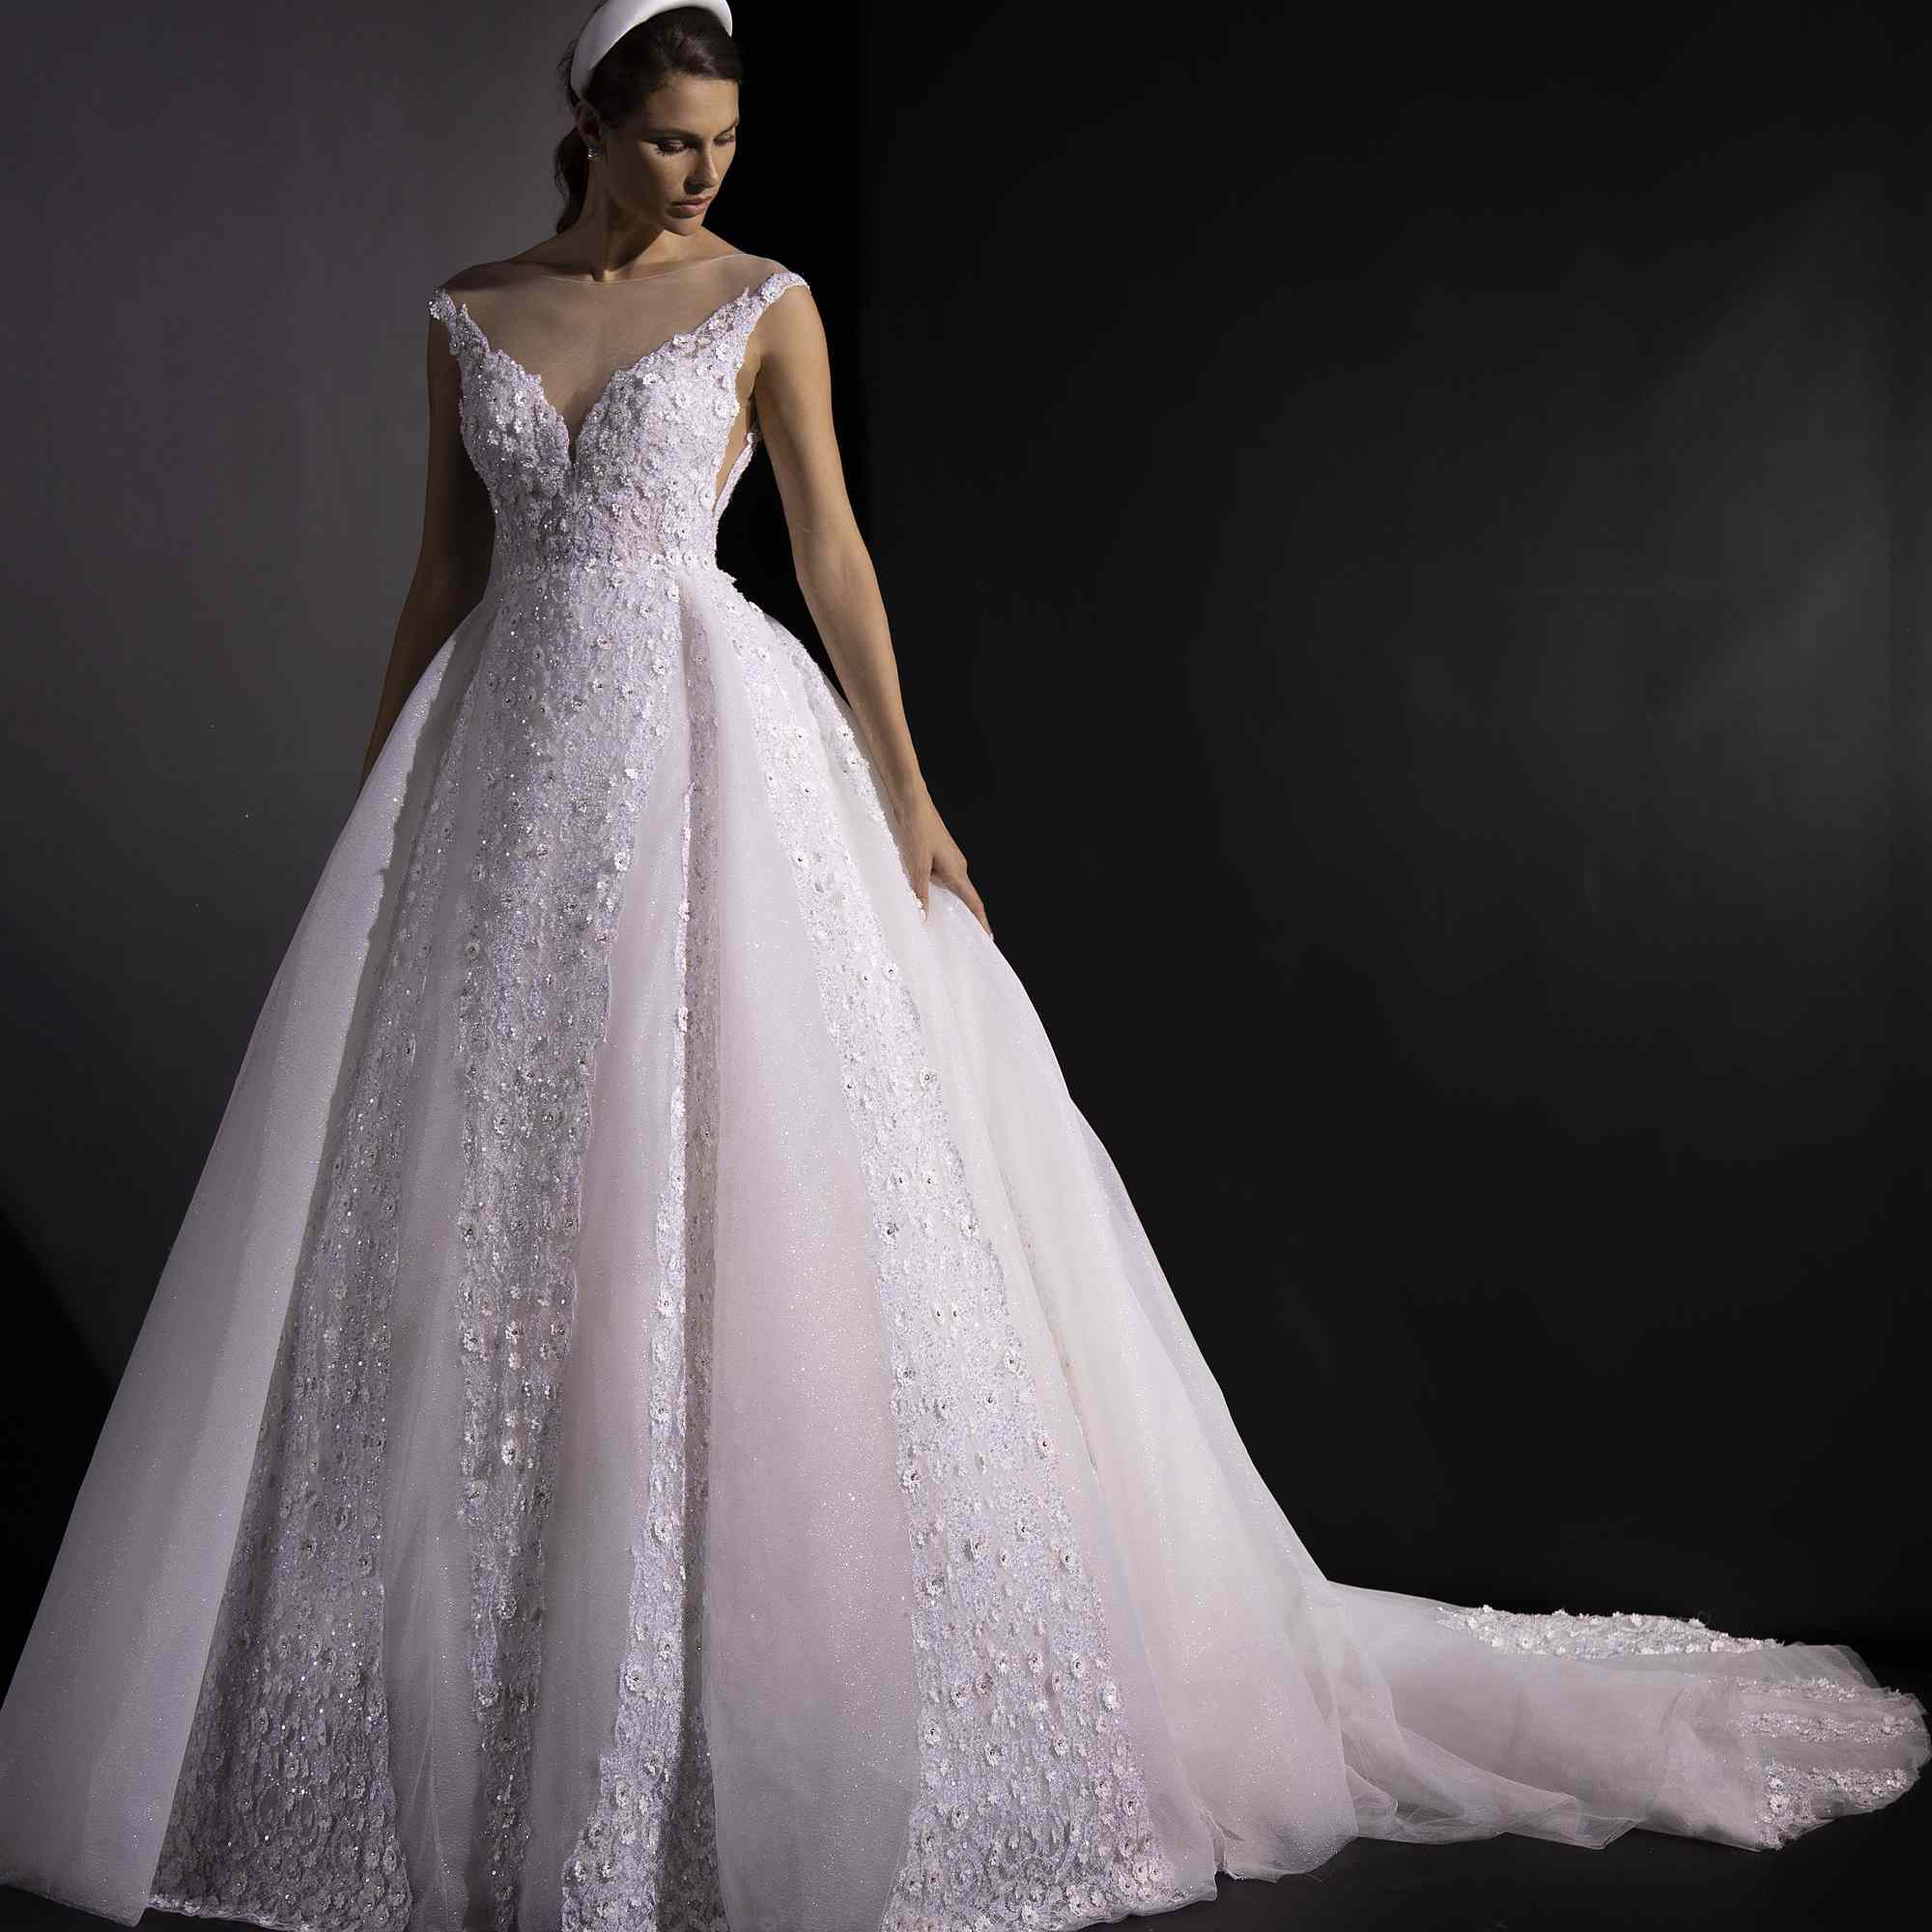 Model in floral lace embellished ballgown with an illusion neckline